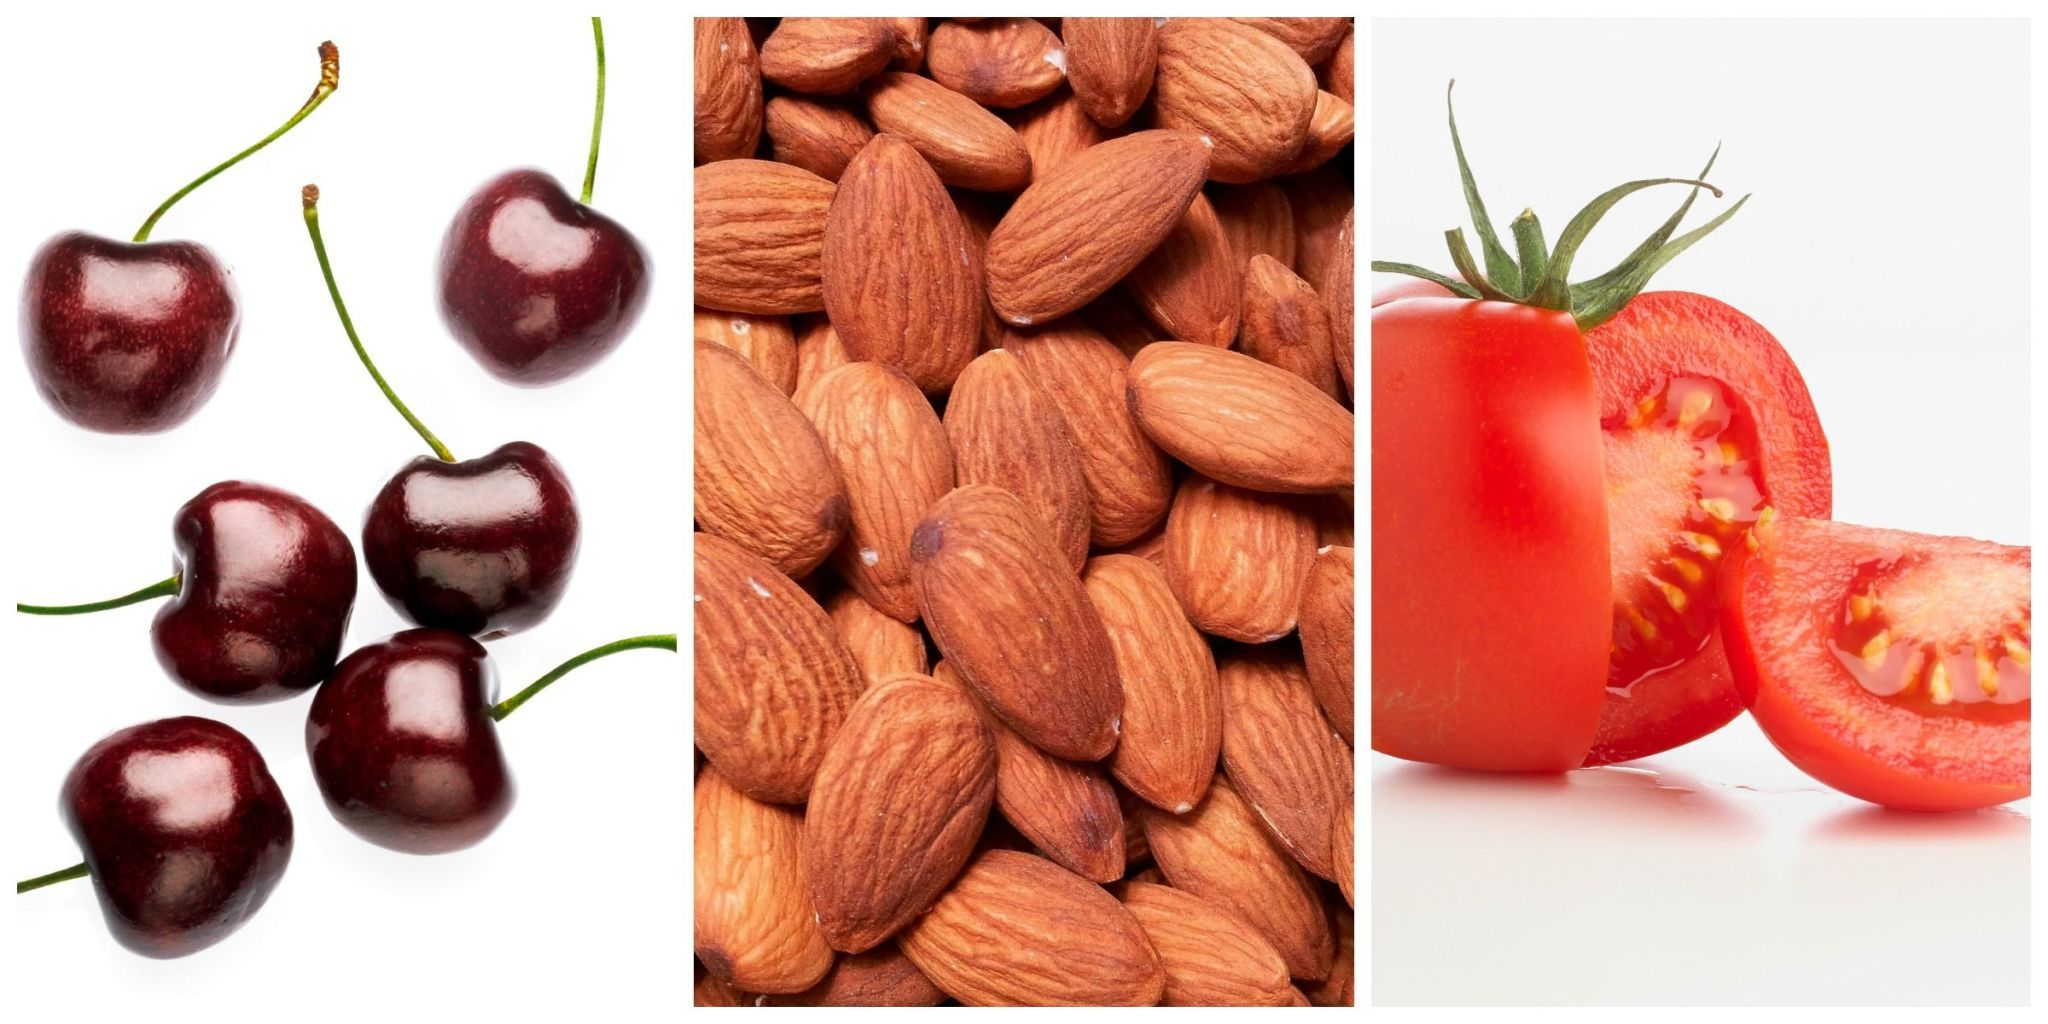 Most Dangerous Foods - Foods That Can Kill You